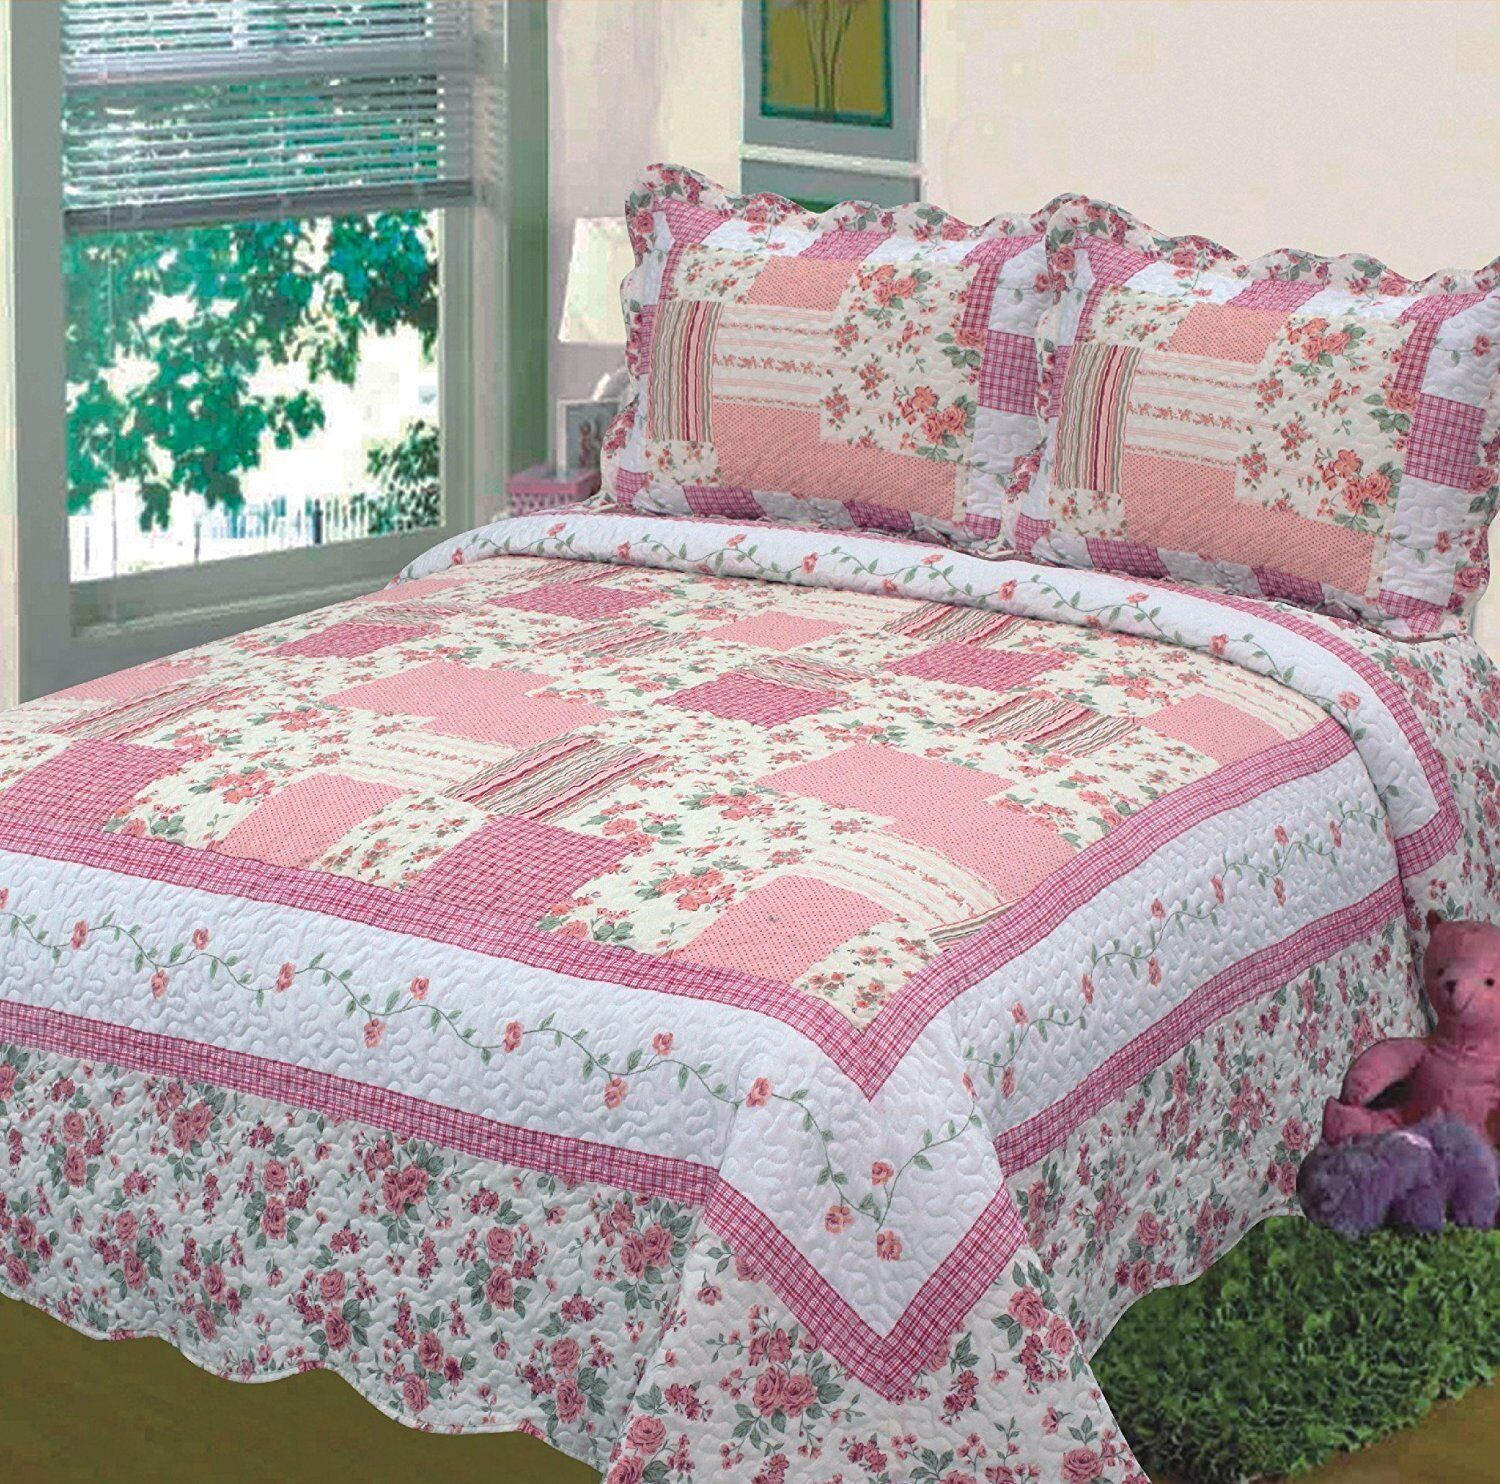 Fancy Linen 3pc Queen, King Bedspread Bed Cover Floral Off W